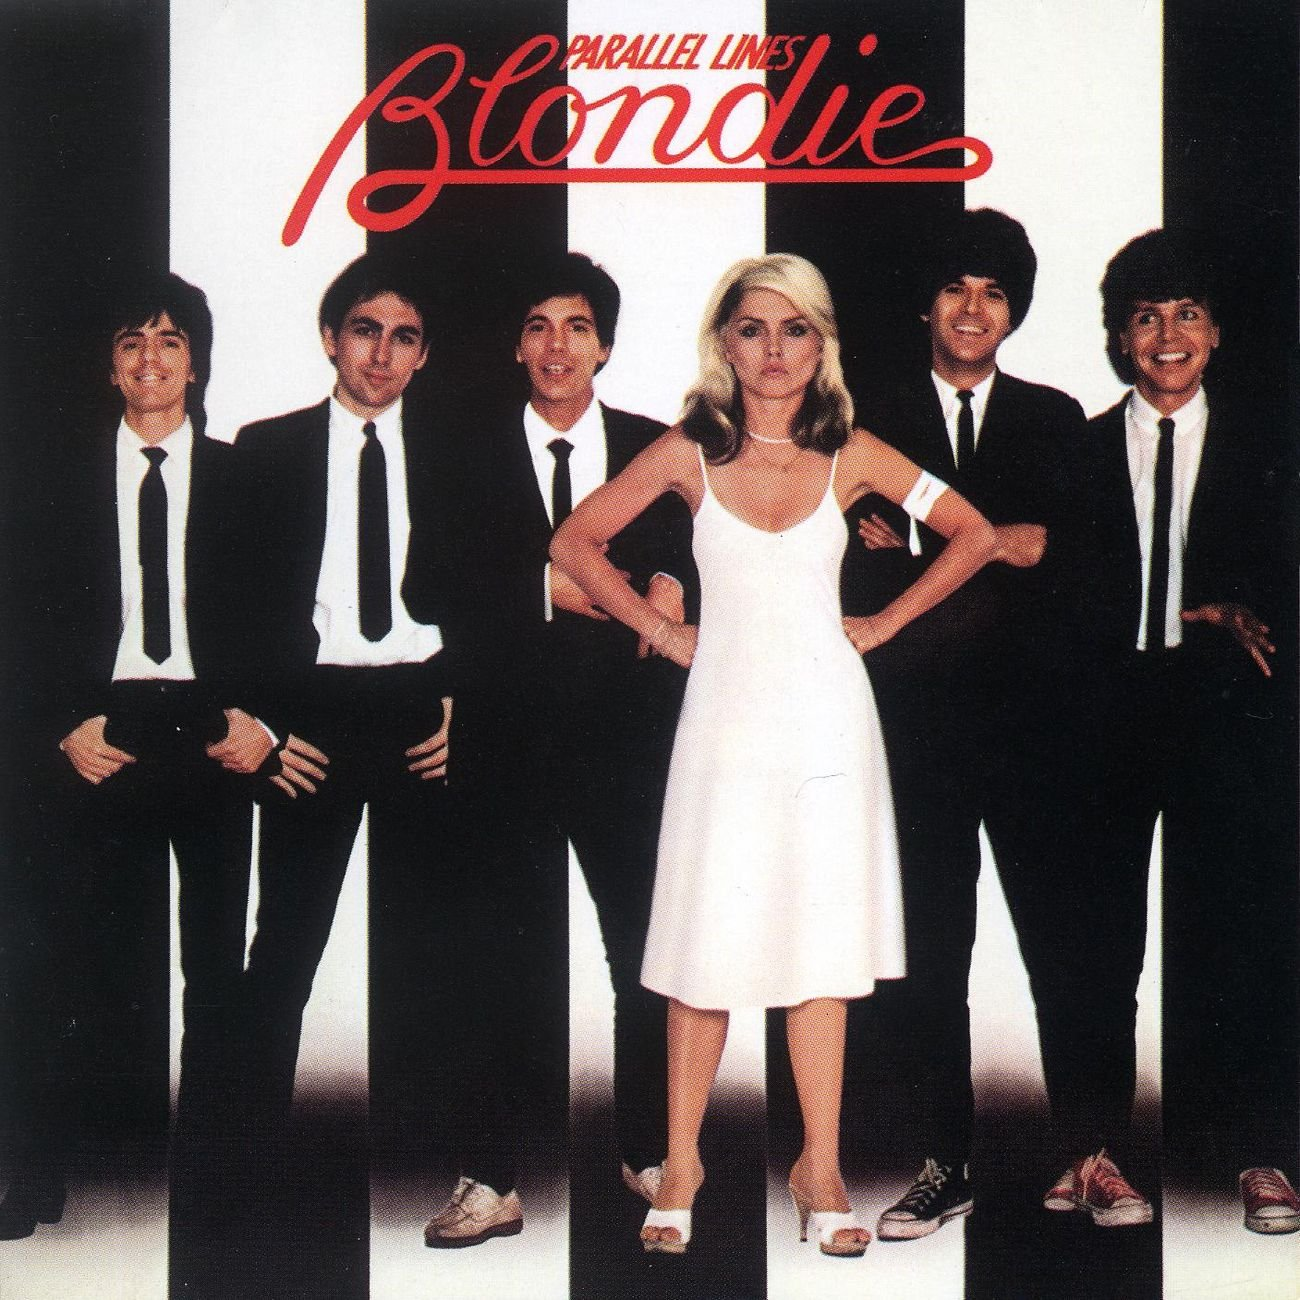 blondie-parallel-lines